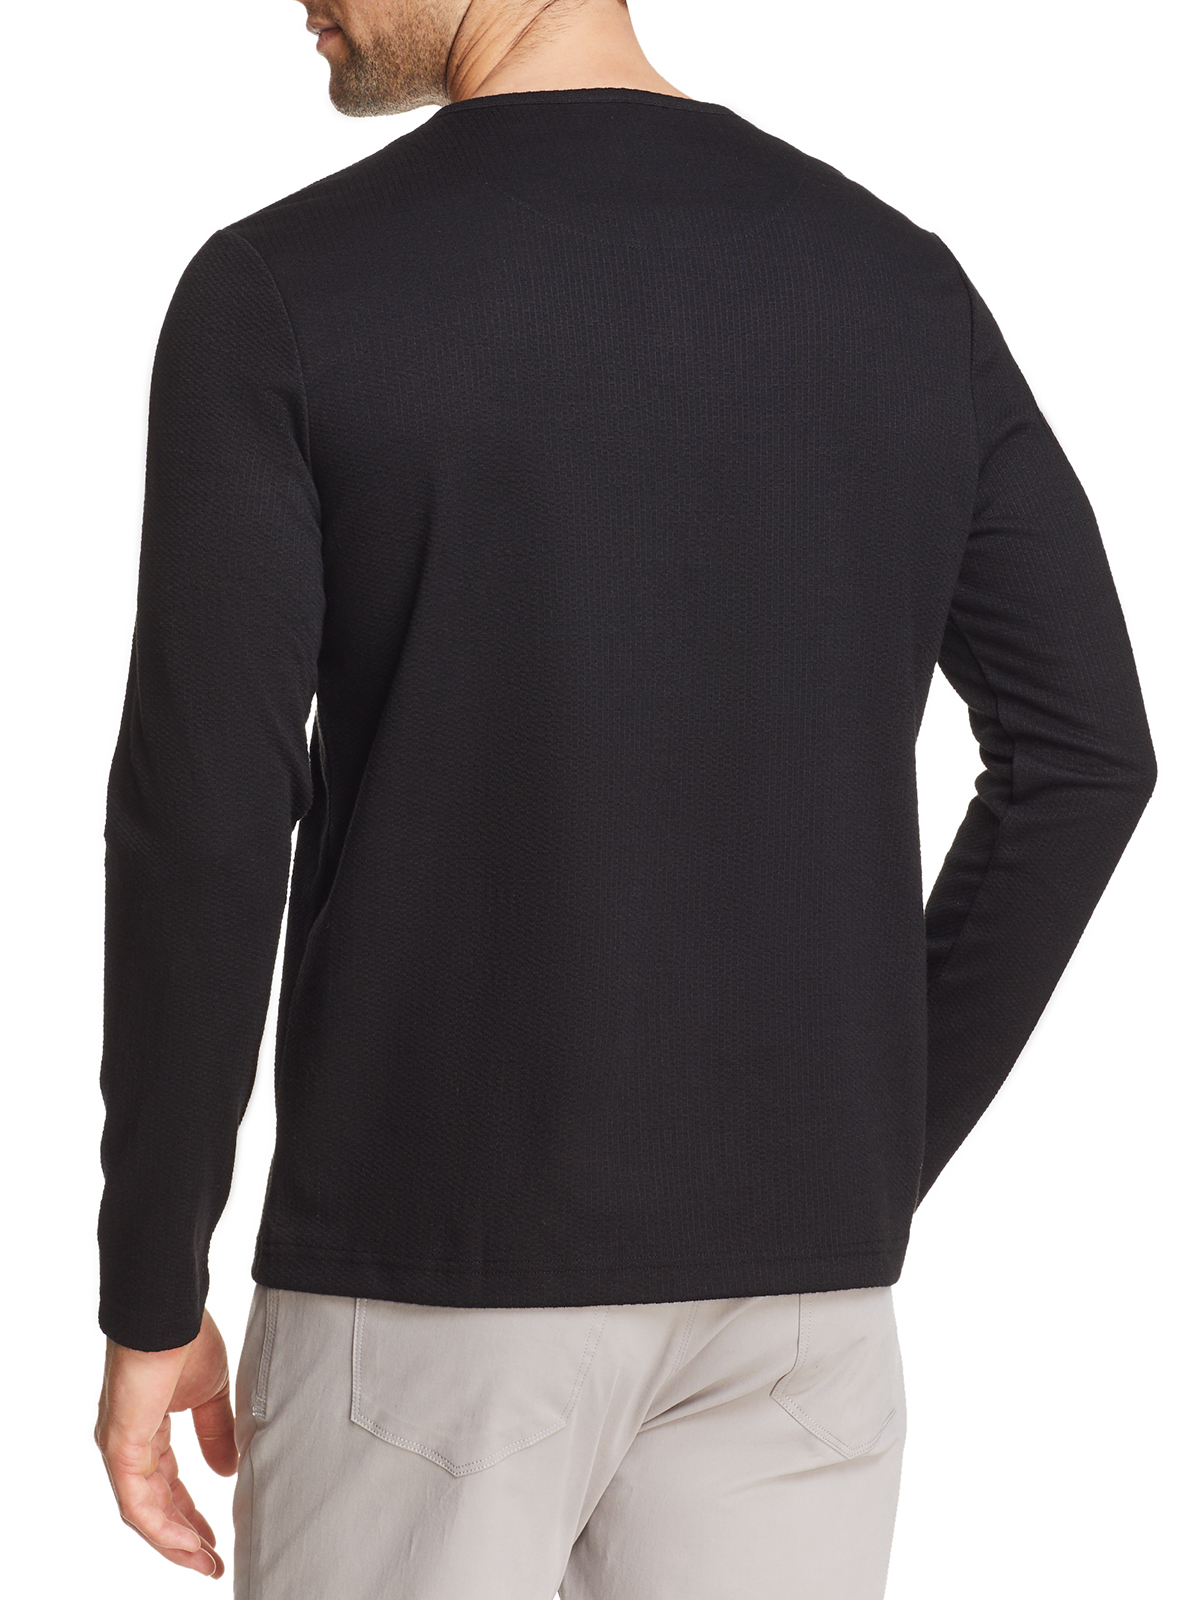 SOLID WAFFLE KNIT LONG SLEEVE HENLEY